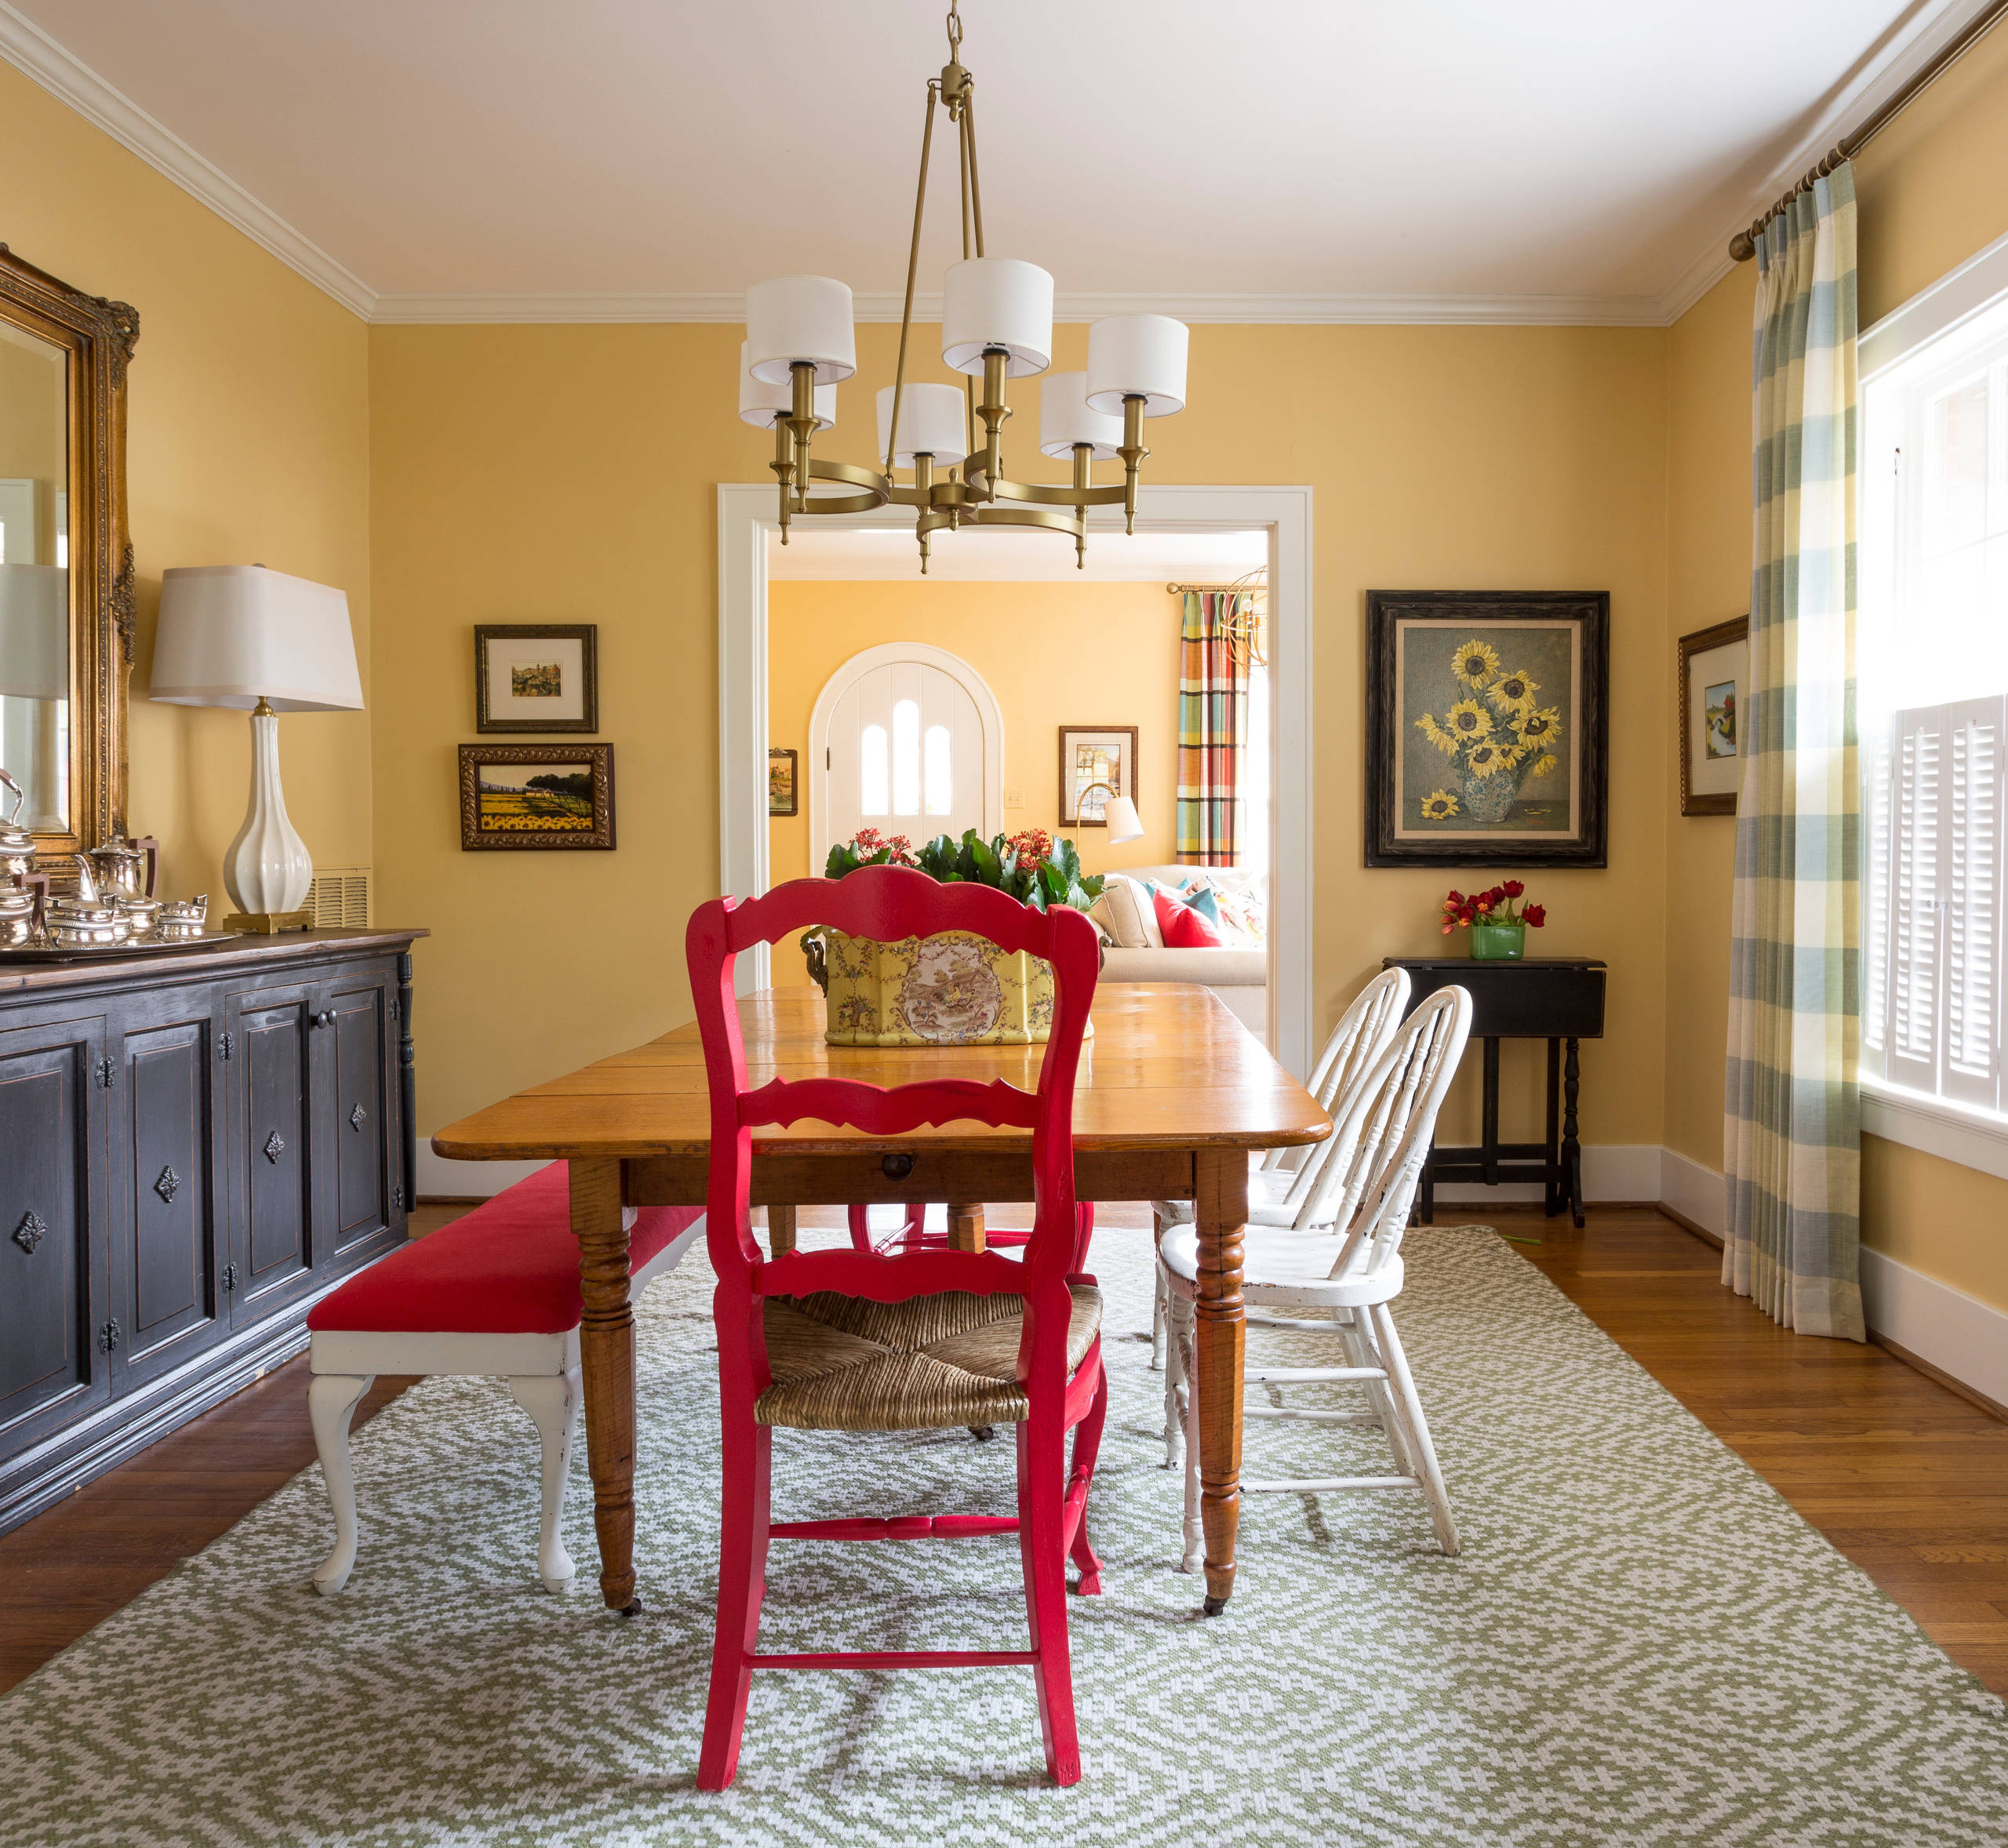 75 Dining Room With Yellow Walls Ideas, Yellow And White Dining Room